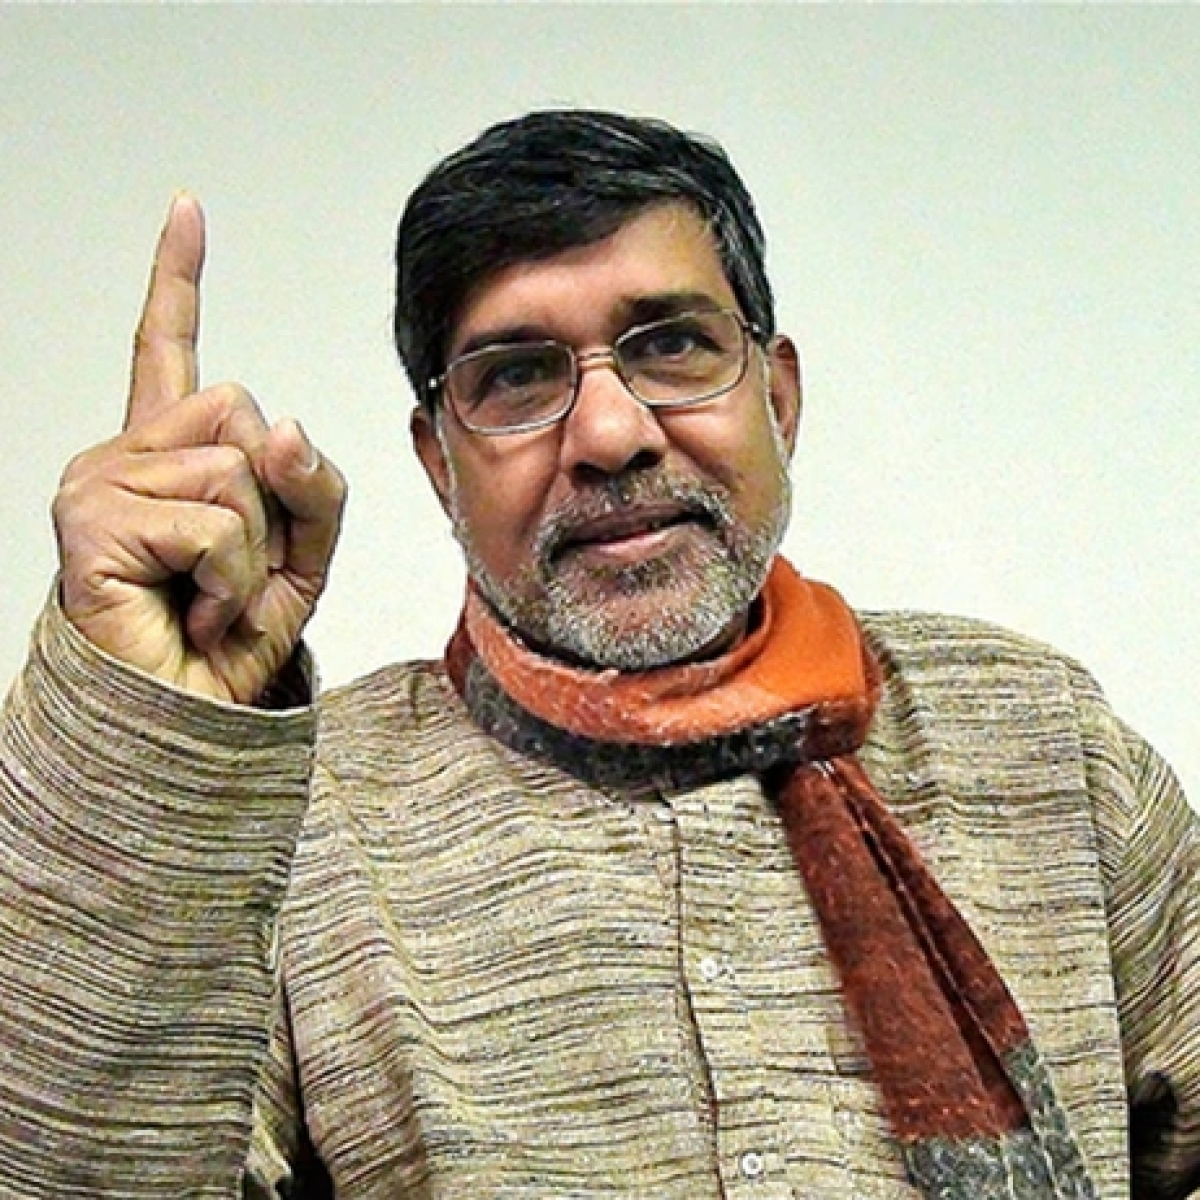 World Day Against Child Labour 2021: Nobel Peace Prize awardee Kailash Satyarthi calls for 'Team India Against Child Labour'